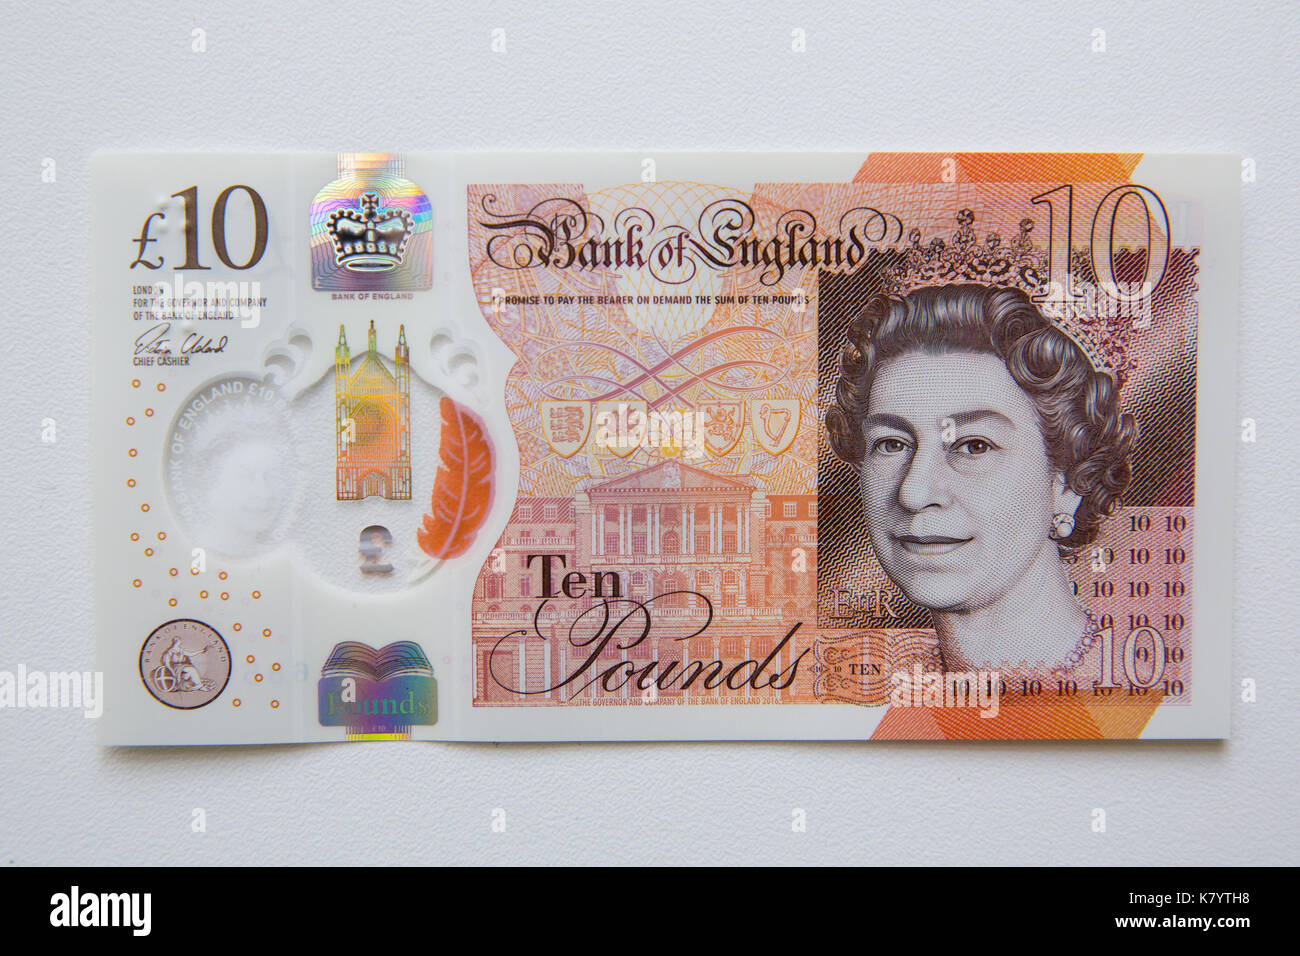 10 Libras Esterlinas Image Of The New Plastic Ten Pound Sterling Note Stock